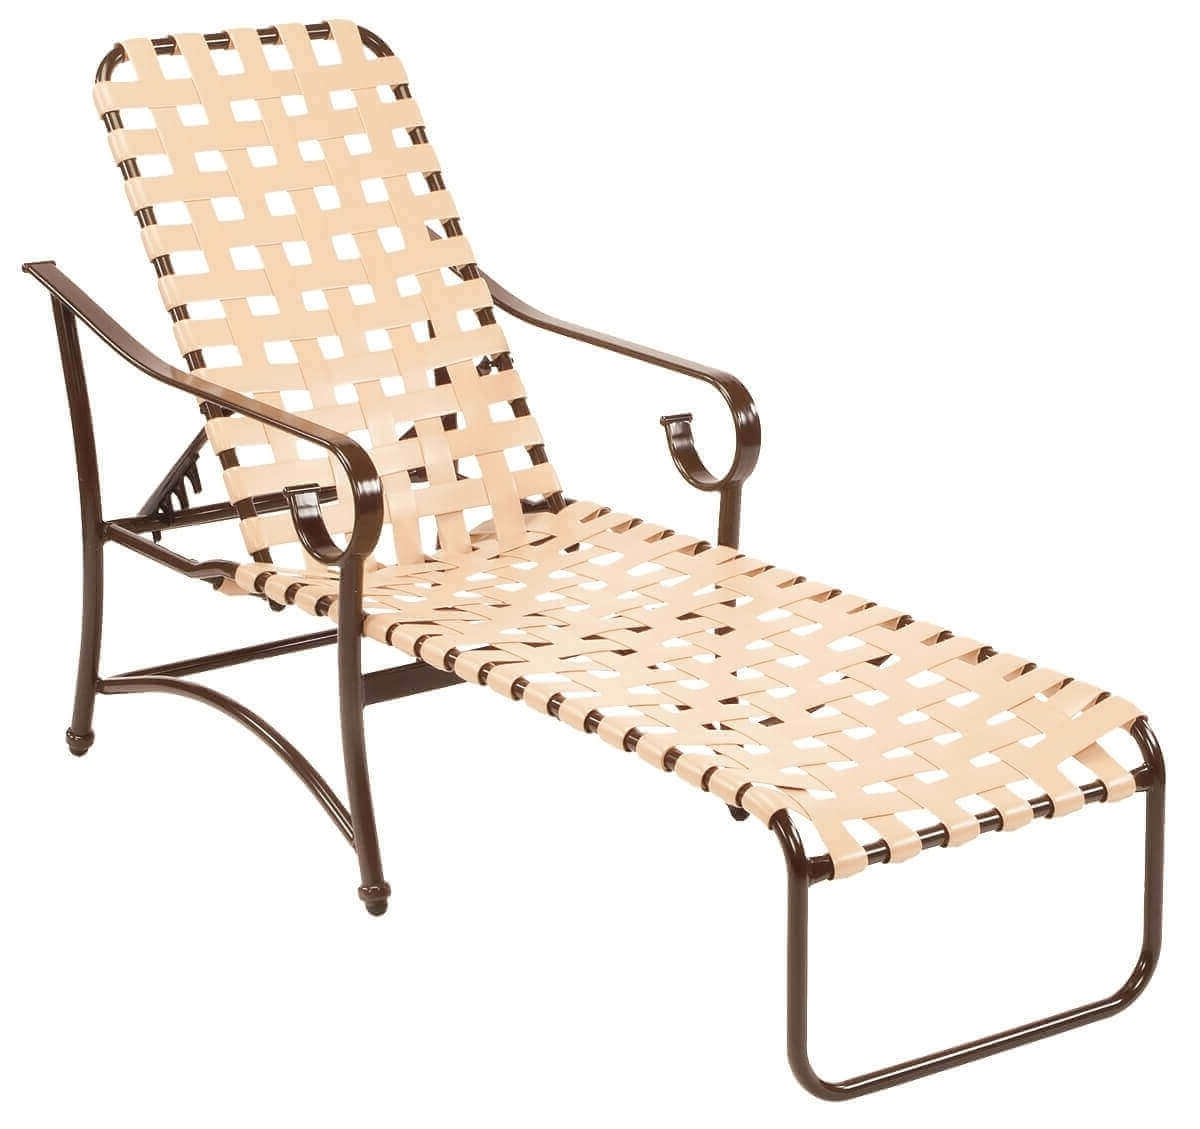 Popular Chaise Lounge Strap Chairs Pertaining To Barbados Cross Weave Vinyl Strap Chaise Lounge – Commercial (View 10 of 15)